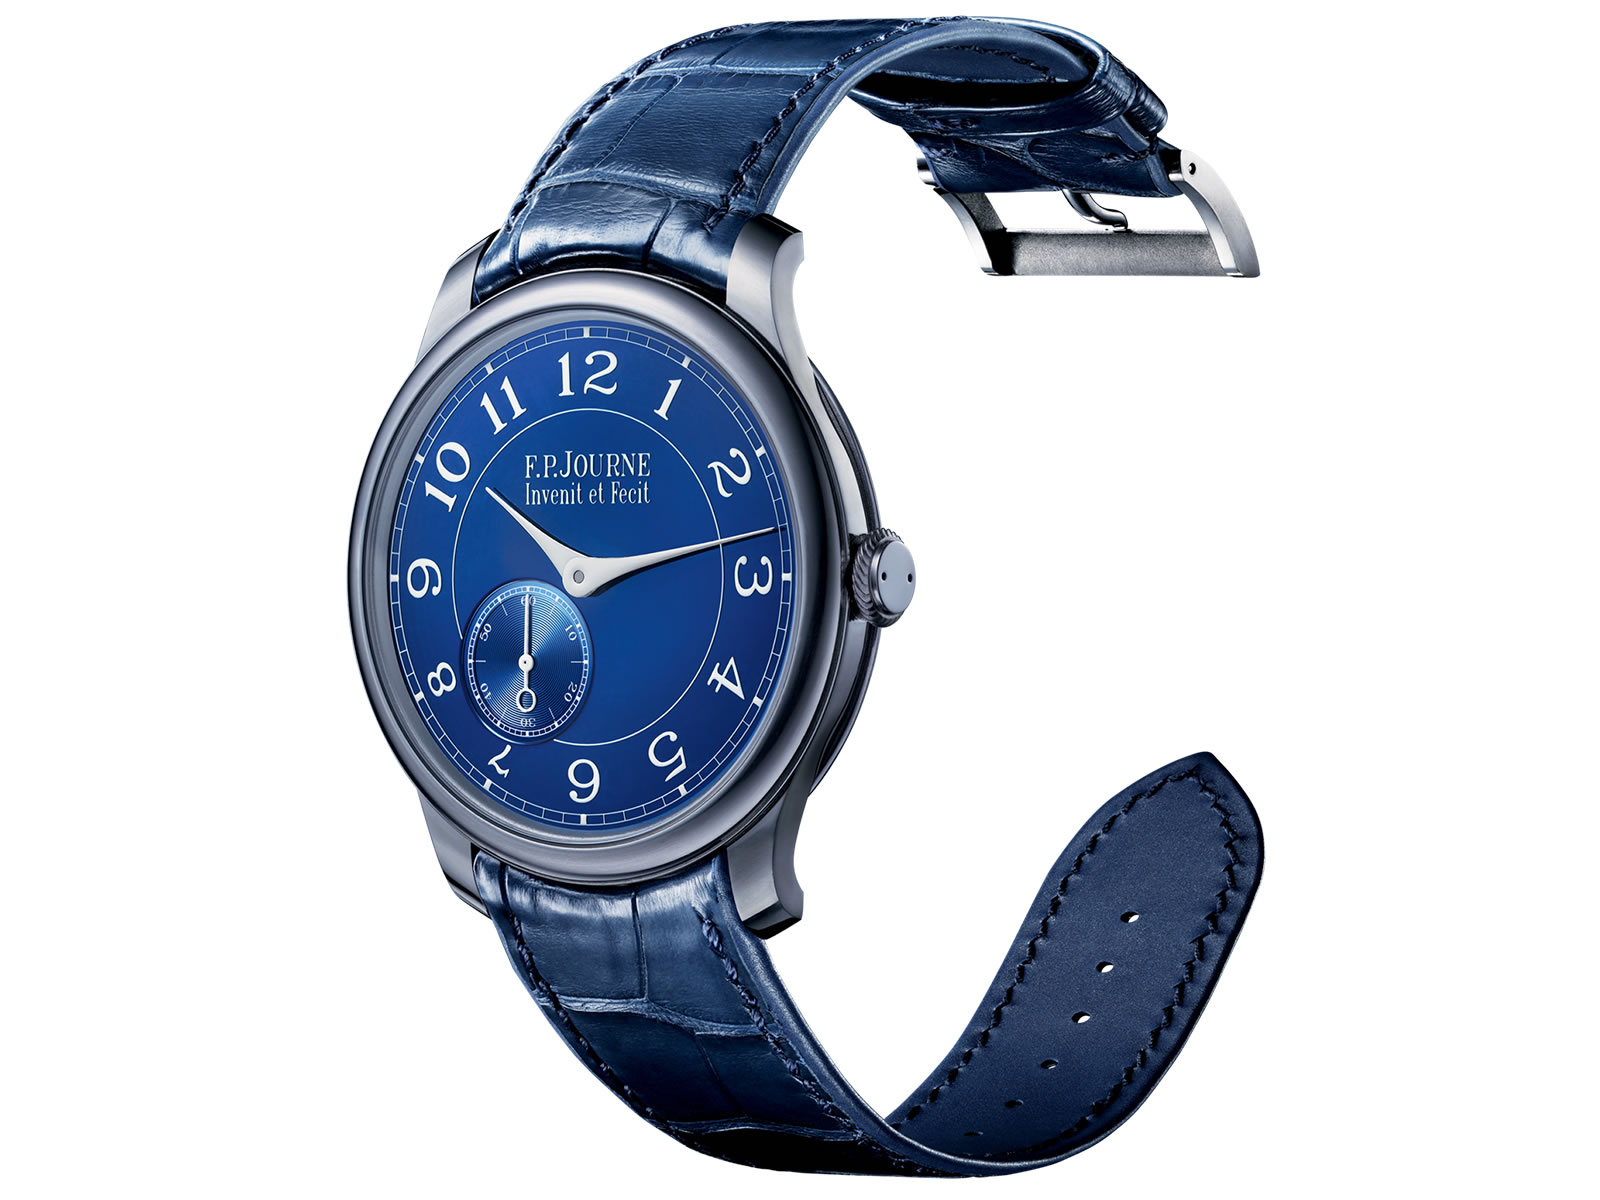 f-p-journe-chronometre-bleu.jpg